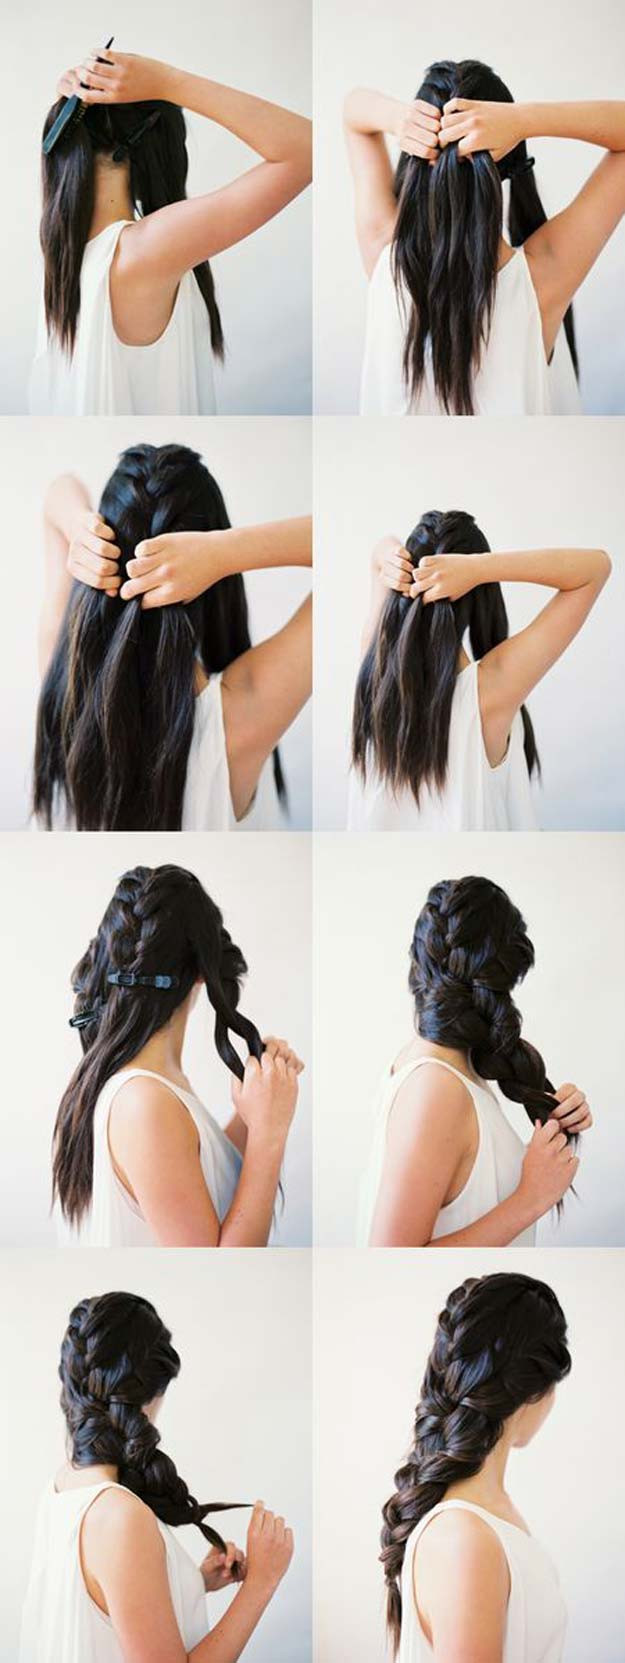 Easy Hairstyles For Short Hair To Do At Home Step By Step  41 DIY Cool Easy Hairstyles That Real People Can Do at